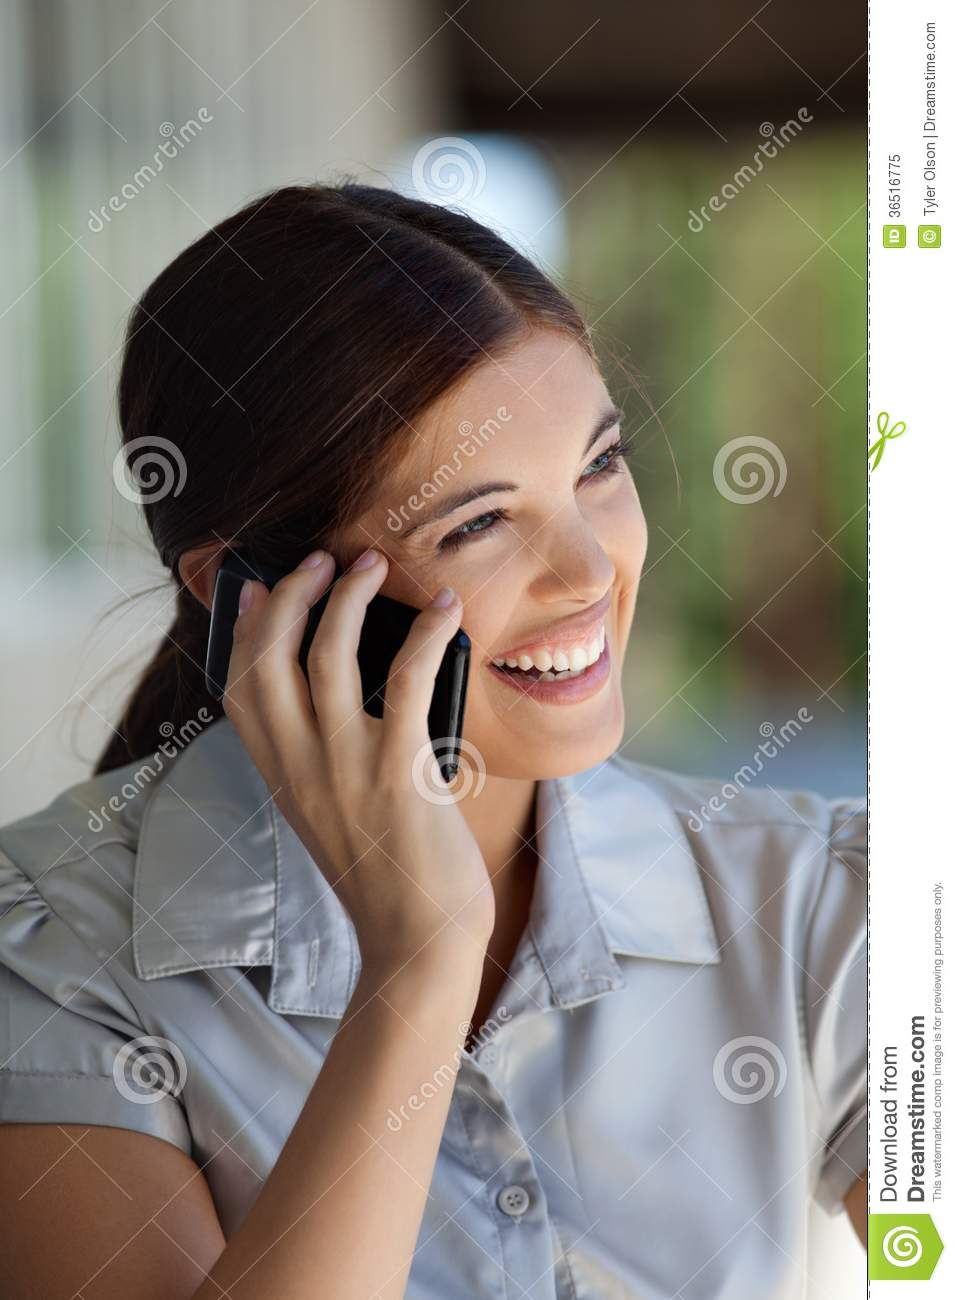 Female Executive Talking on Cell Phone